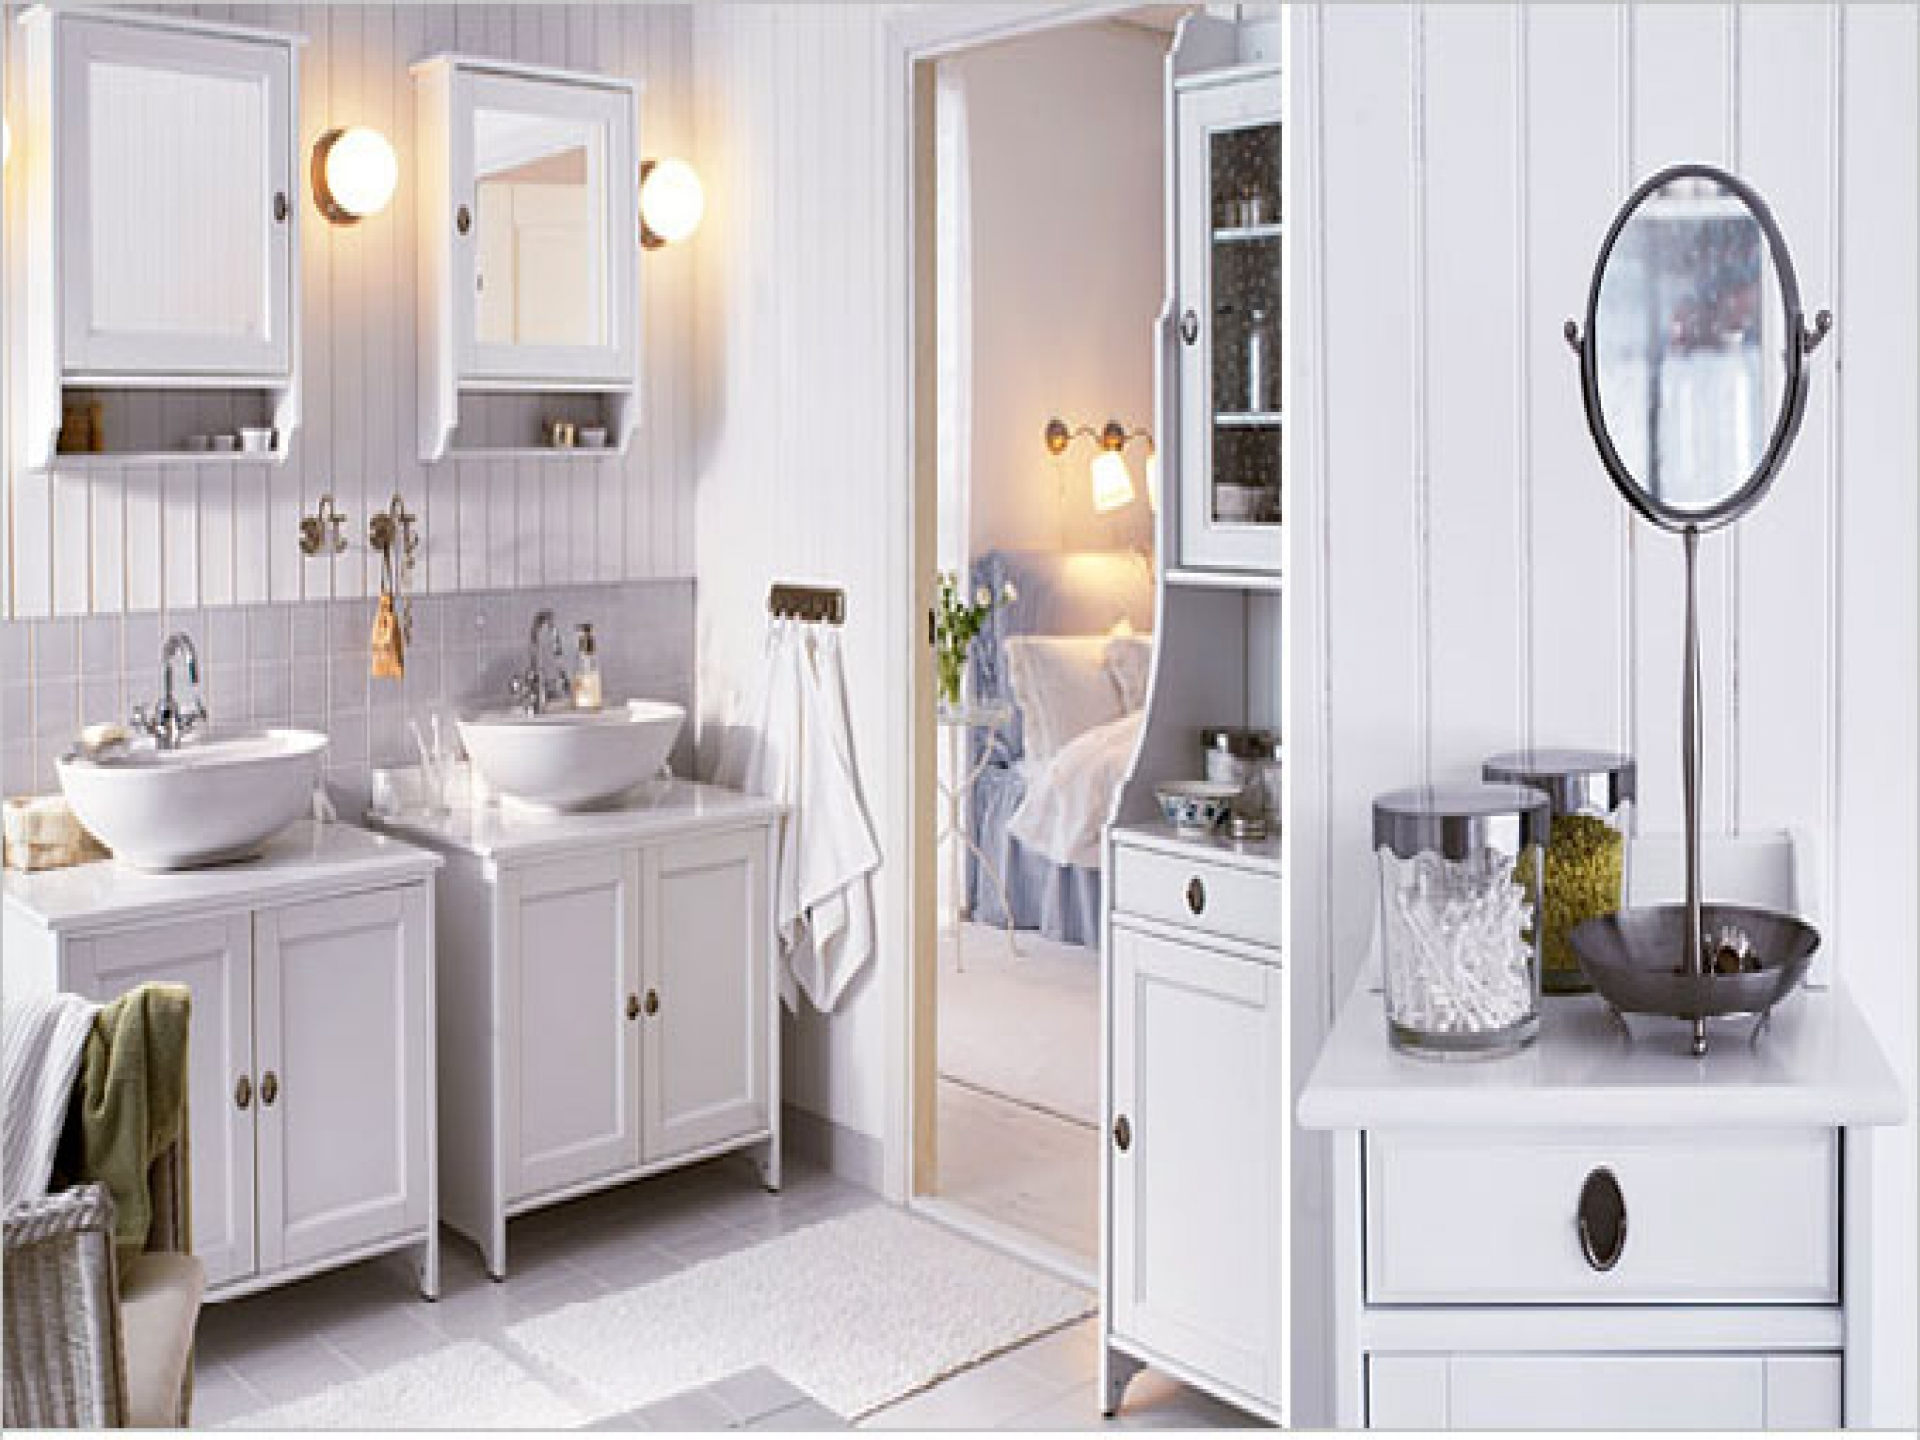 Ikea bath cabinet invades every bathroom with dignity - Armadietti cucina ikea ...